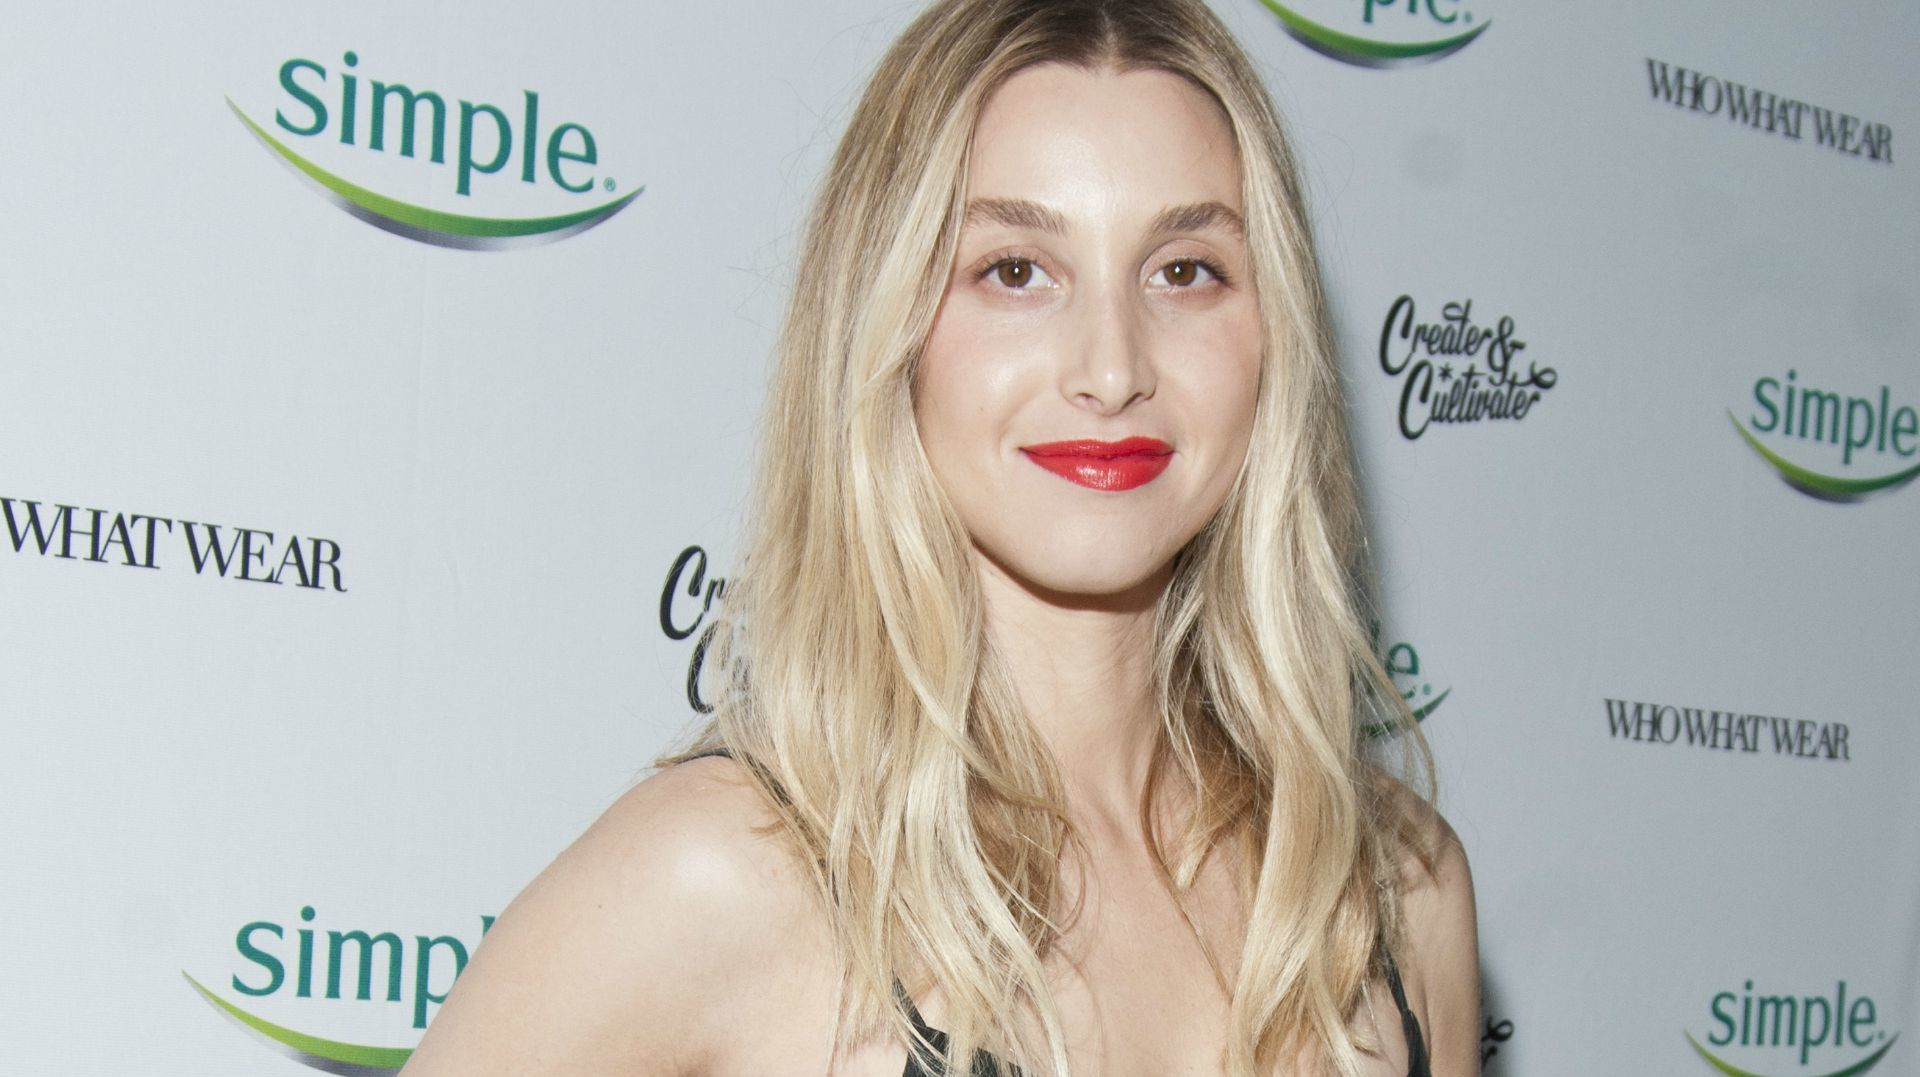 Selfie Whitney Port nudes (46 photos), Topless, Hot, Feet, cleavage 2019